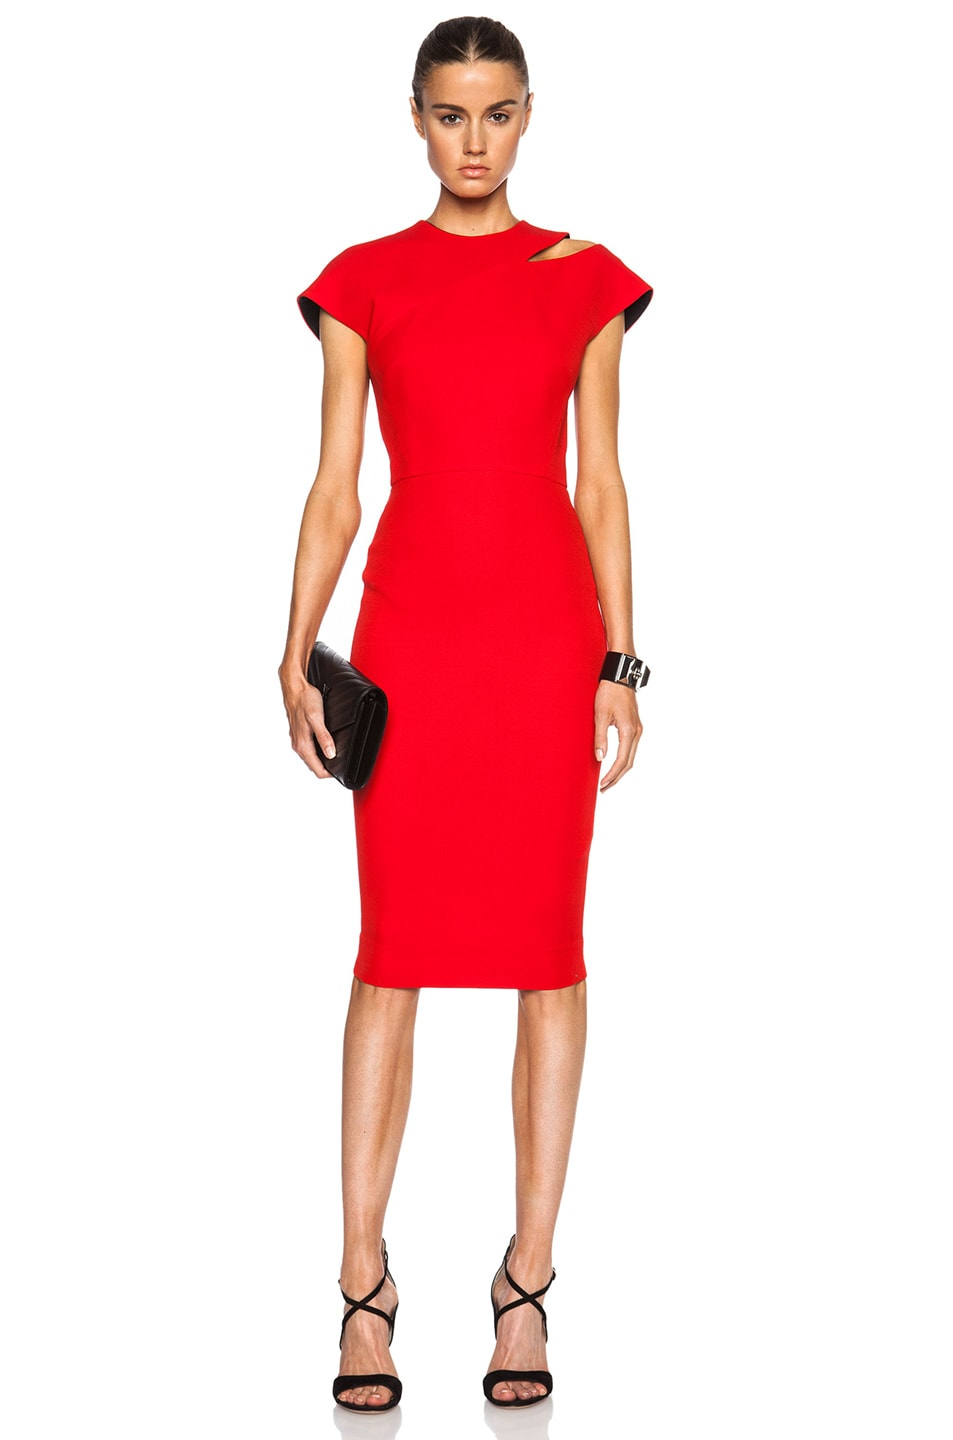 1100c74c46742c Image 1 of Victoria Beckham Cap Sleeve Cut Out Dress in Red